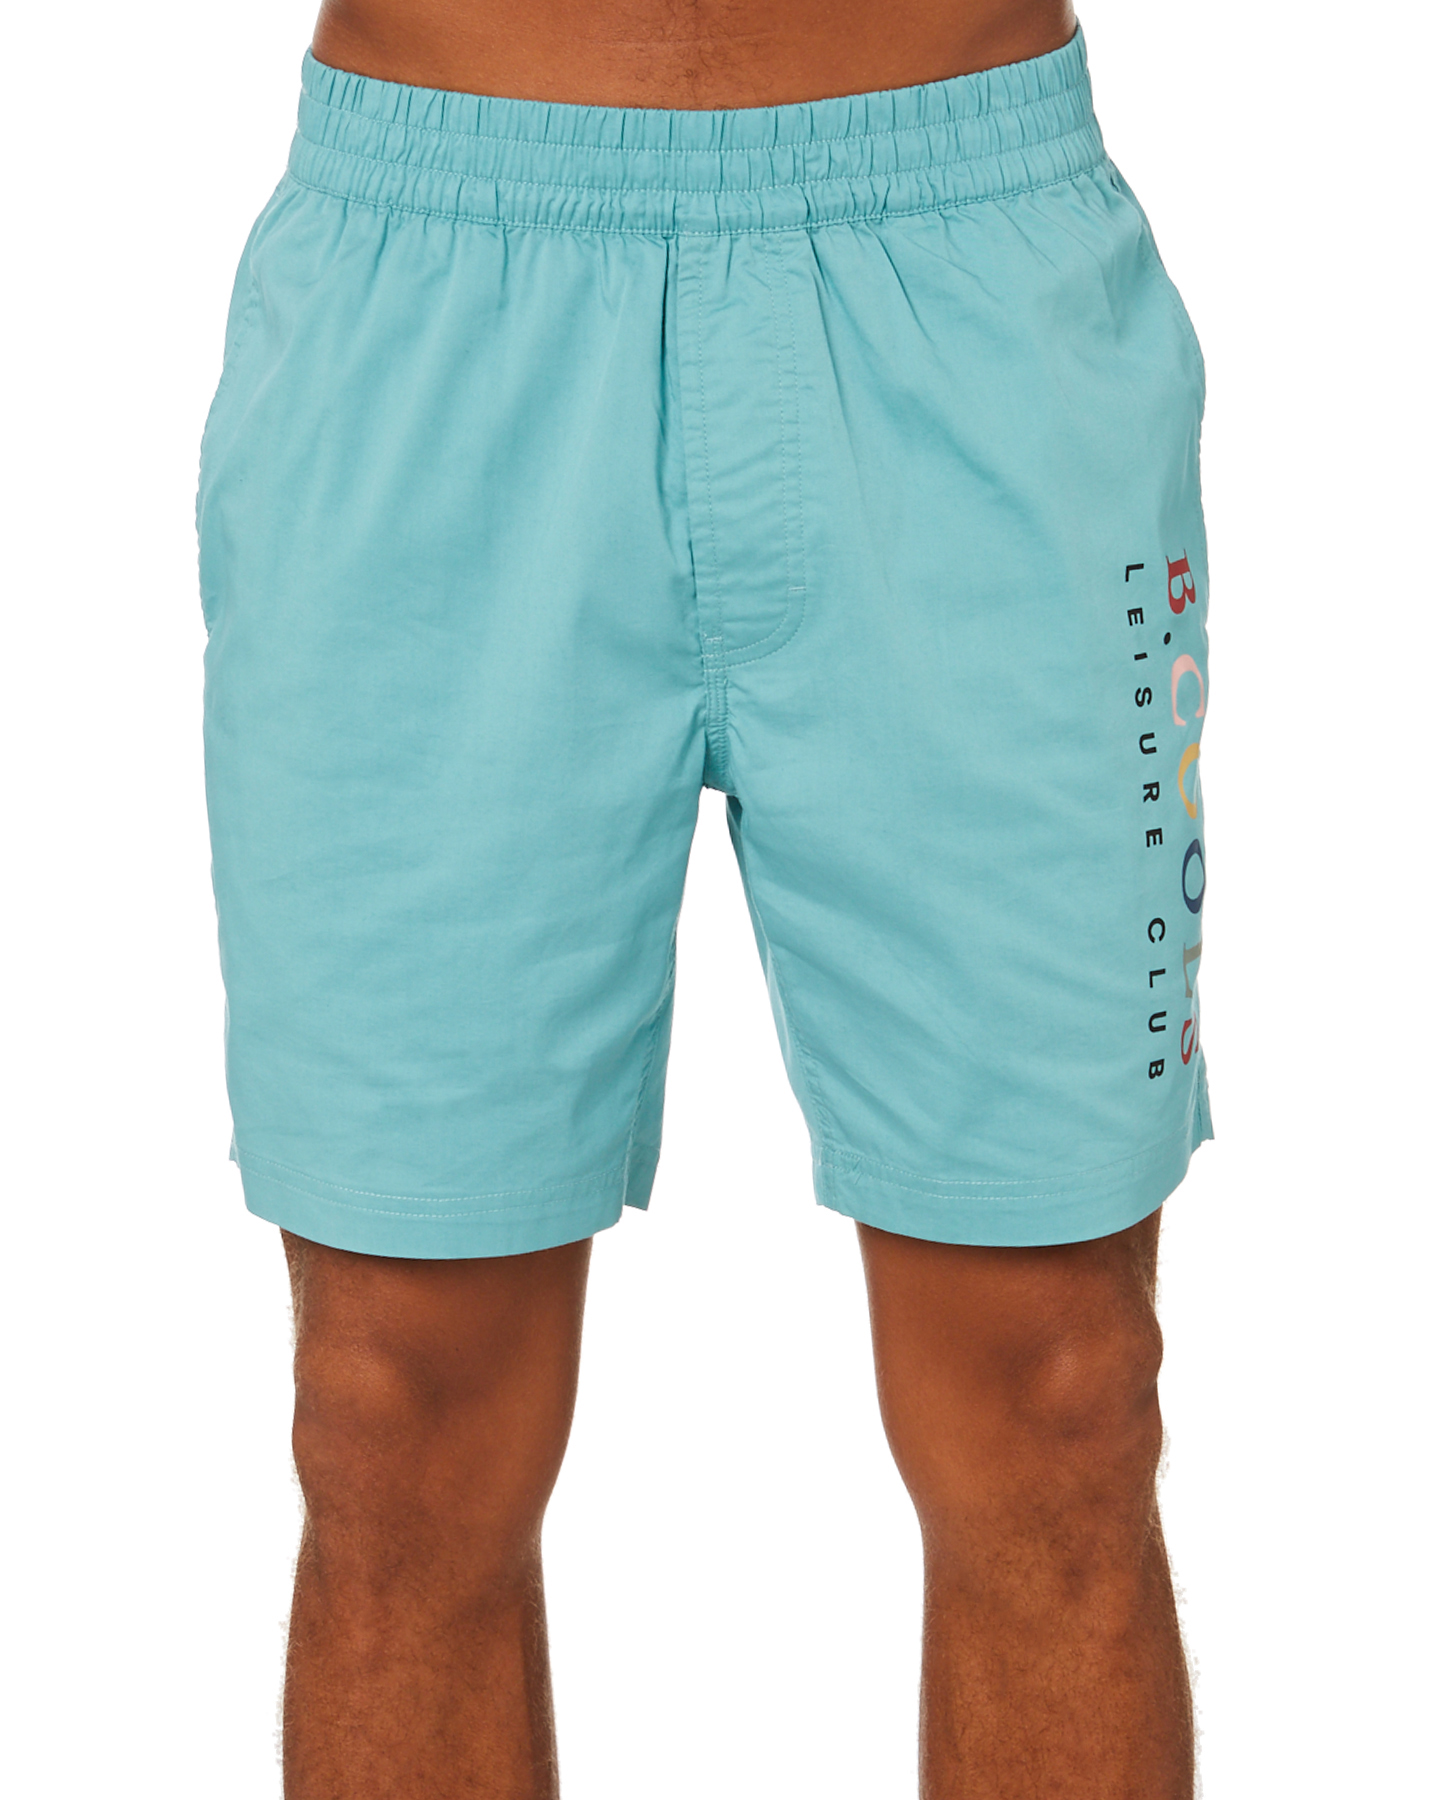 Barney Cools Leisure Club Mens Short Teal Teal